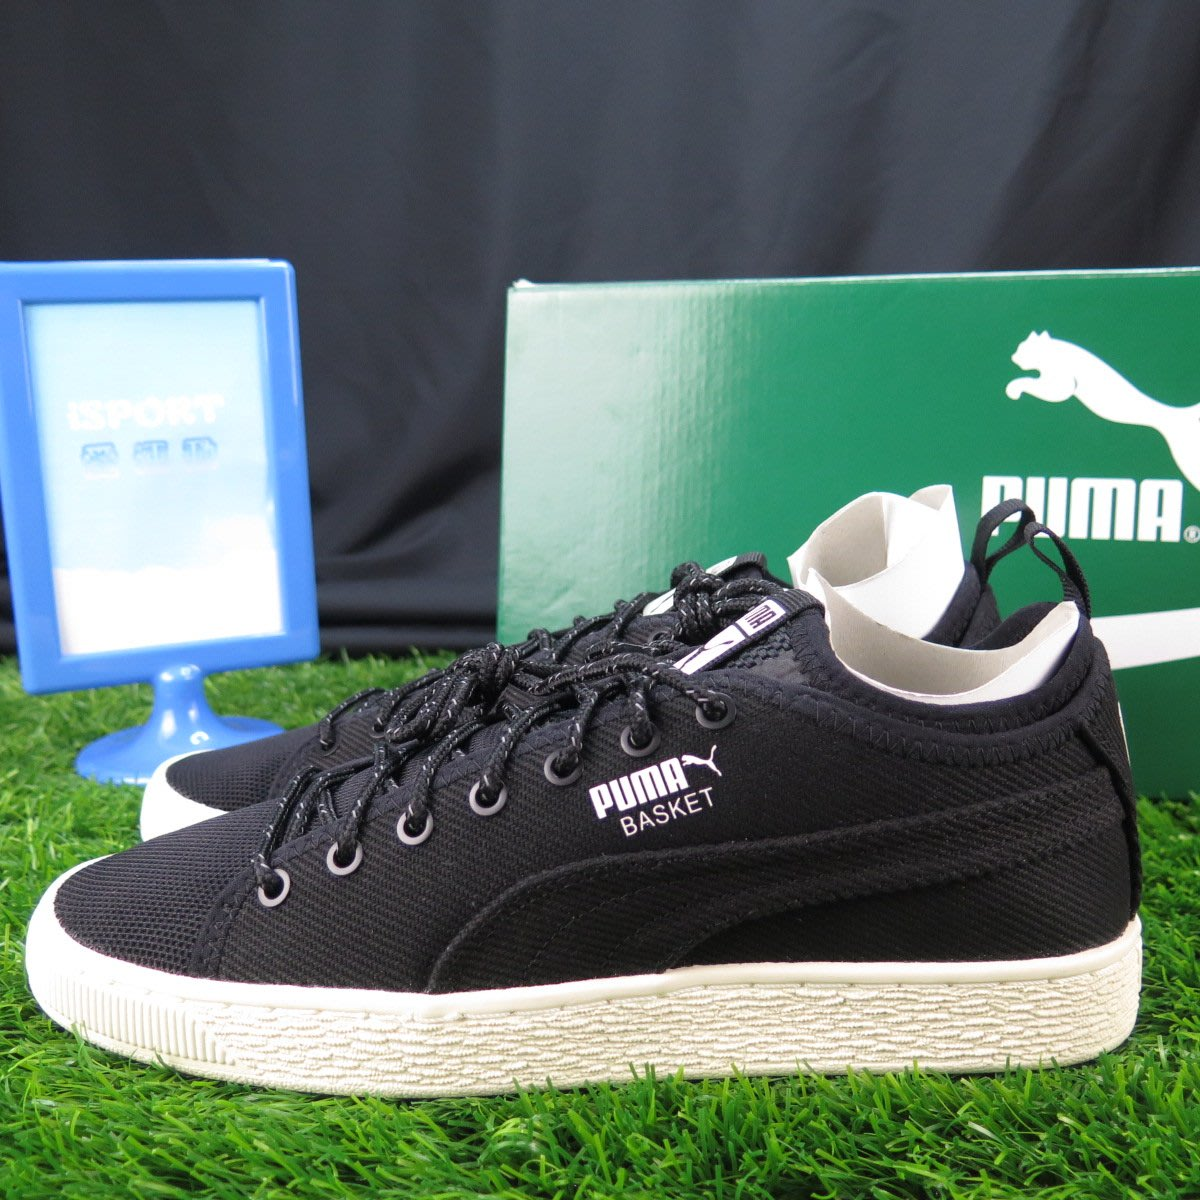 official photos 6ab8a b8611 iSport愛運動】PUMA BASKET CLASSIC SOCK LO V2 休閒鞋正品 ...